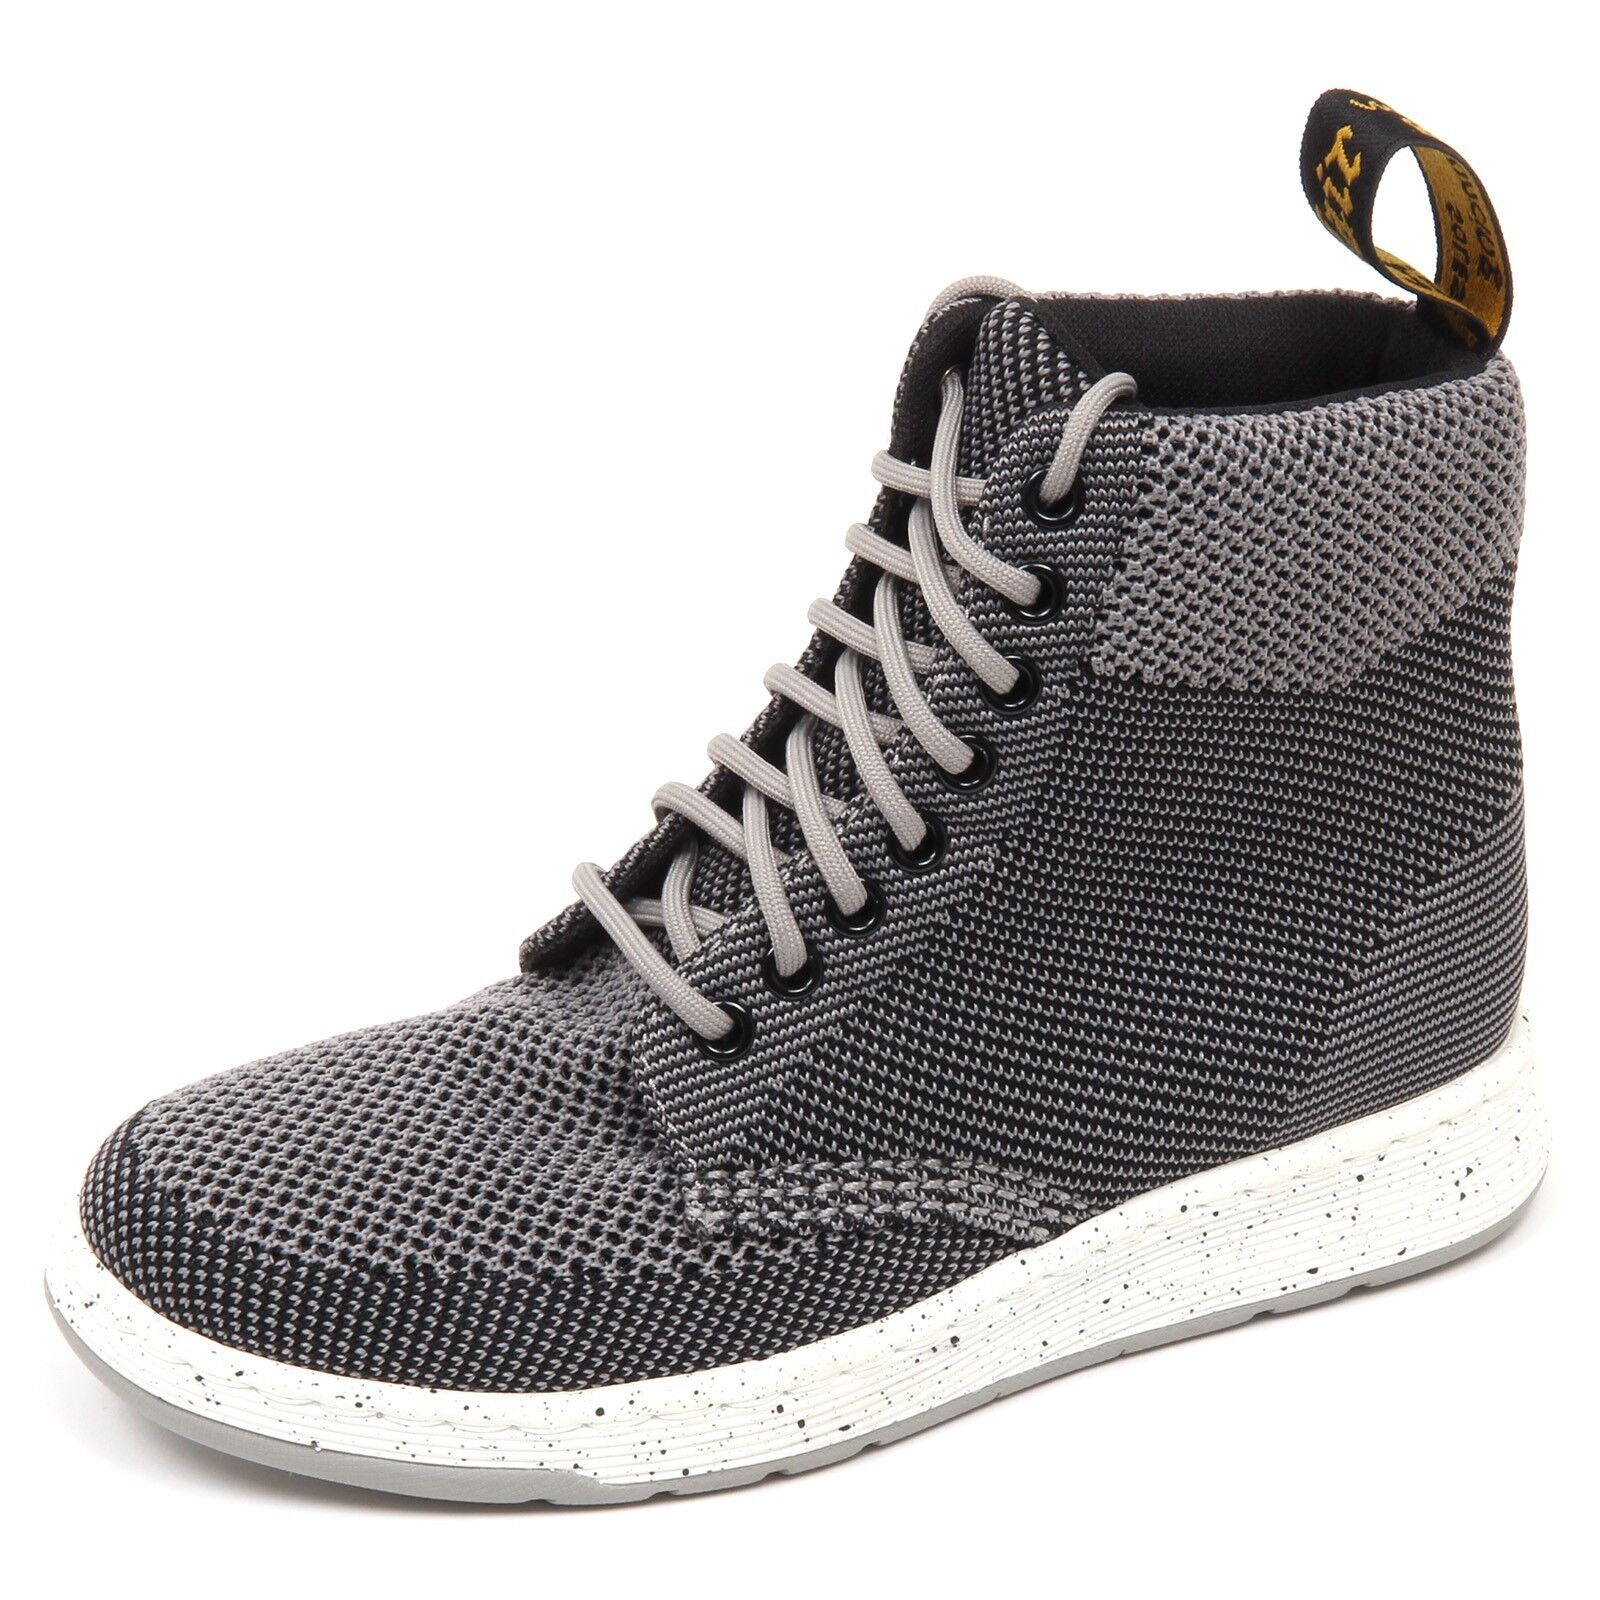 ofreciendo 100% D6412 (without Box) cortos mujer tissue Dr. Martens Martens Martens gris negro zapatos Woman  deportes calientes